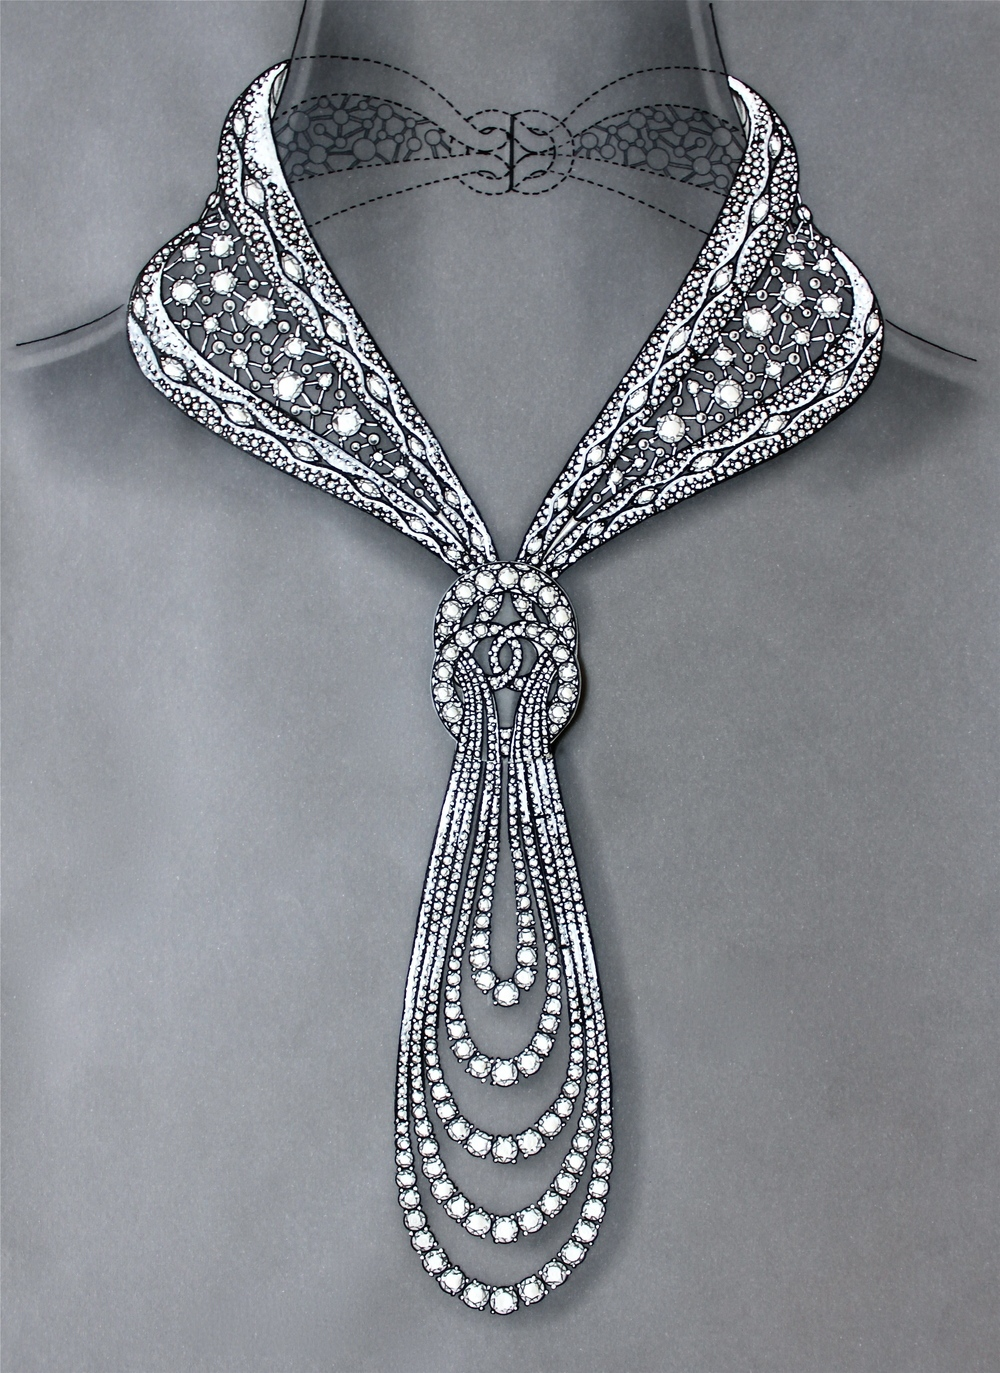 Original hand-drawn blueprint for Eternal diamond necklace by     ©    Reena Ahluwalia